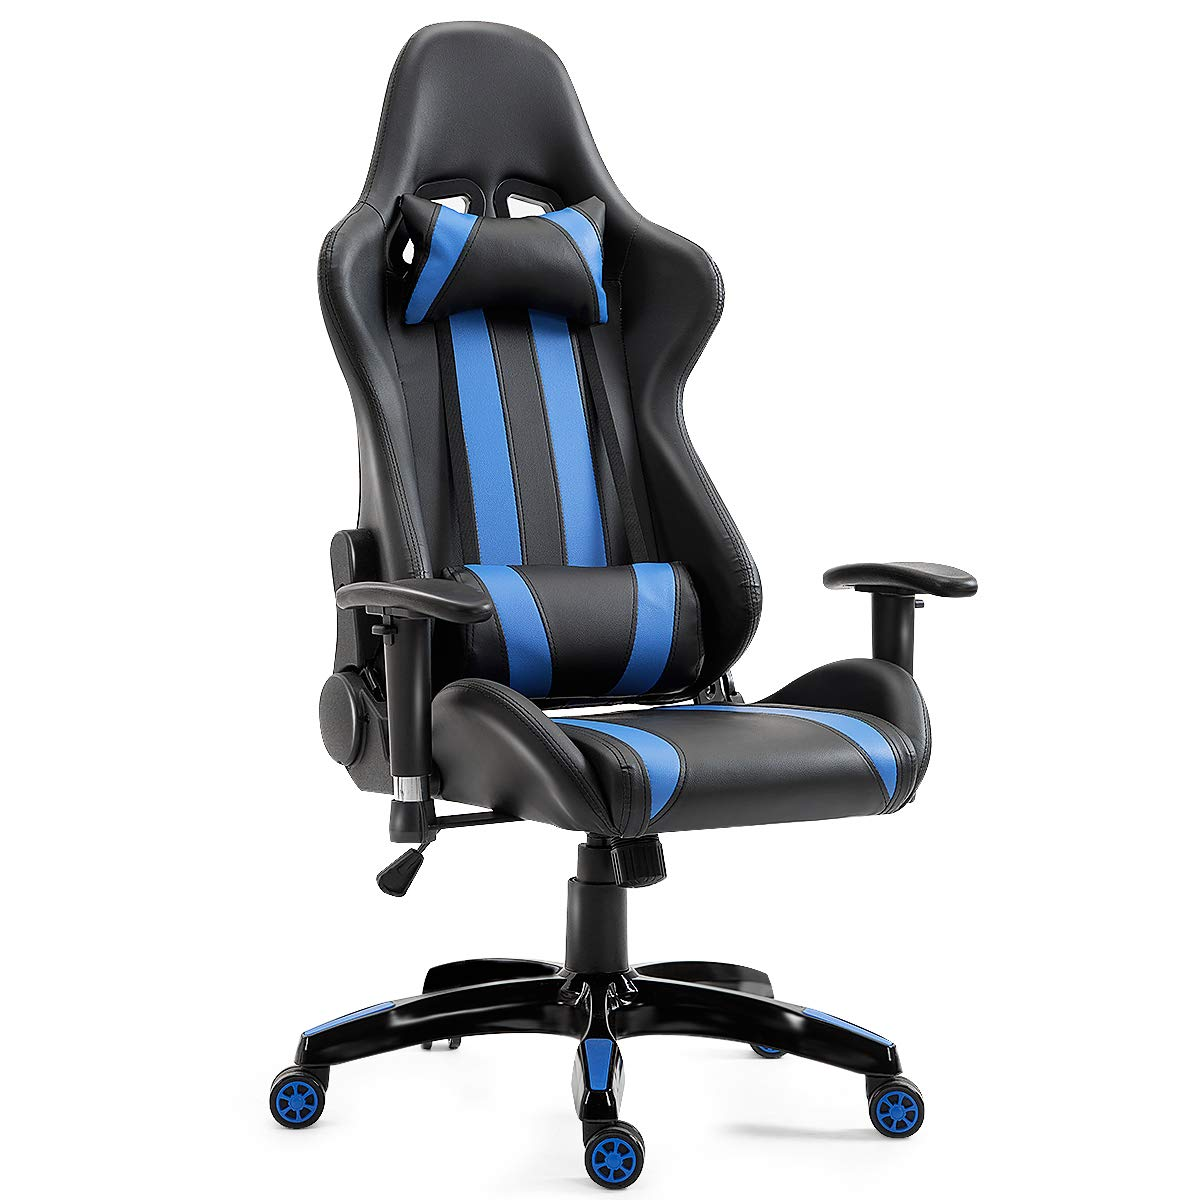 Giantex Gaming Chair Ergonomic Racing Style Chair High Back Executive Office Chair PU Leather Height Adjustable Computer Swivel Desk Chair with Headrest, Lumbar Support and Reclining Back Blue